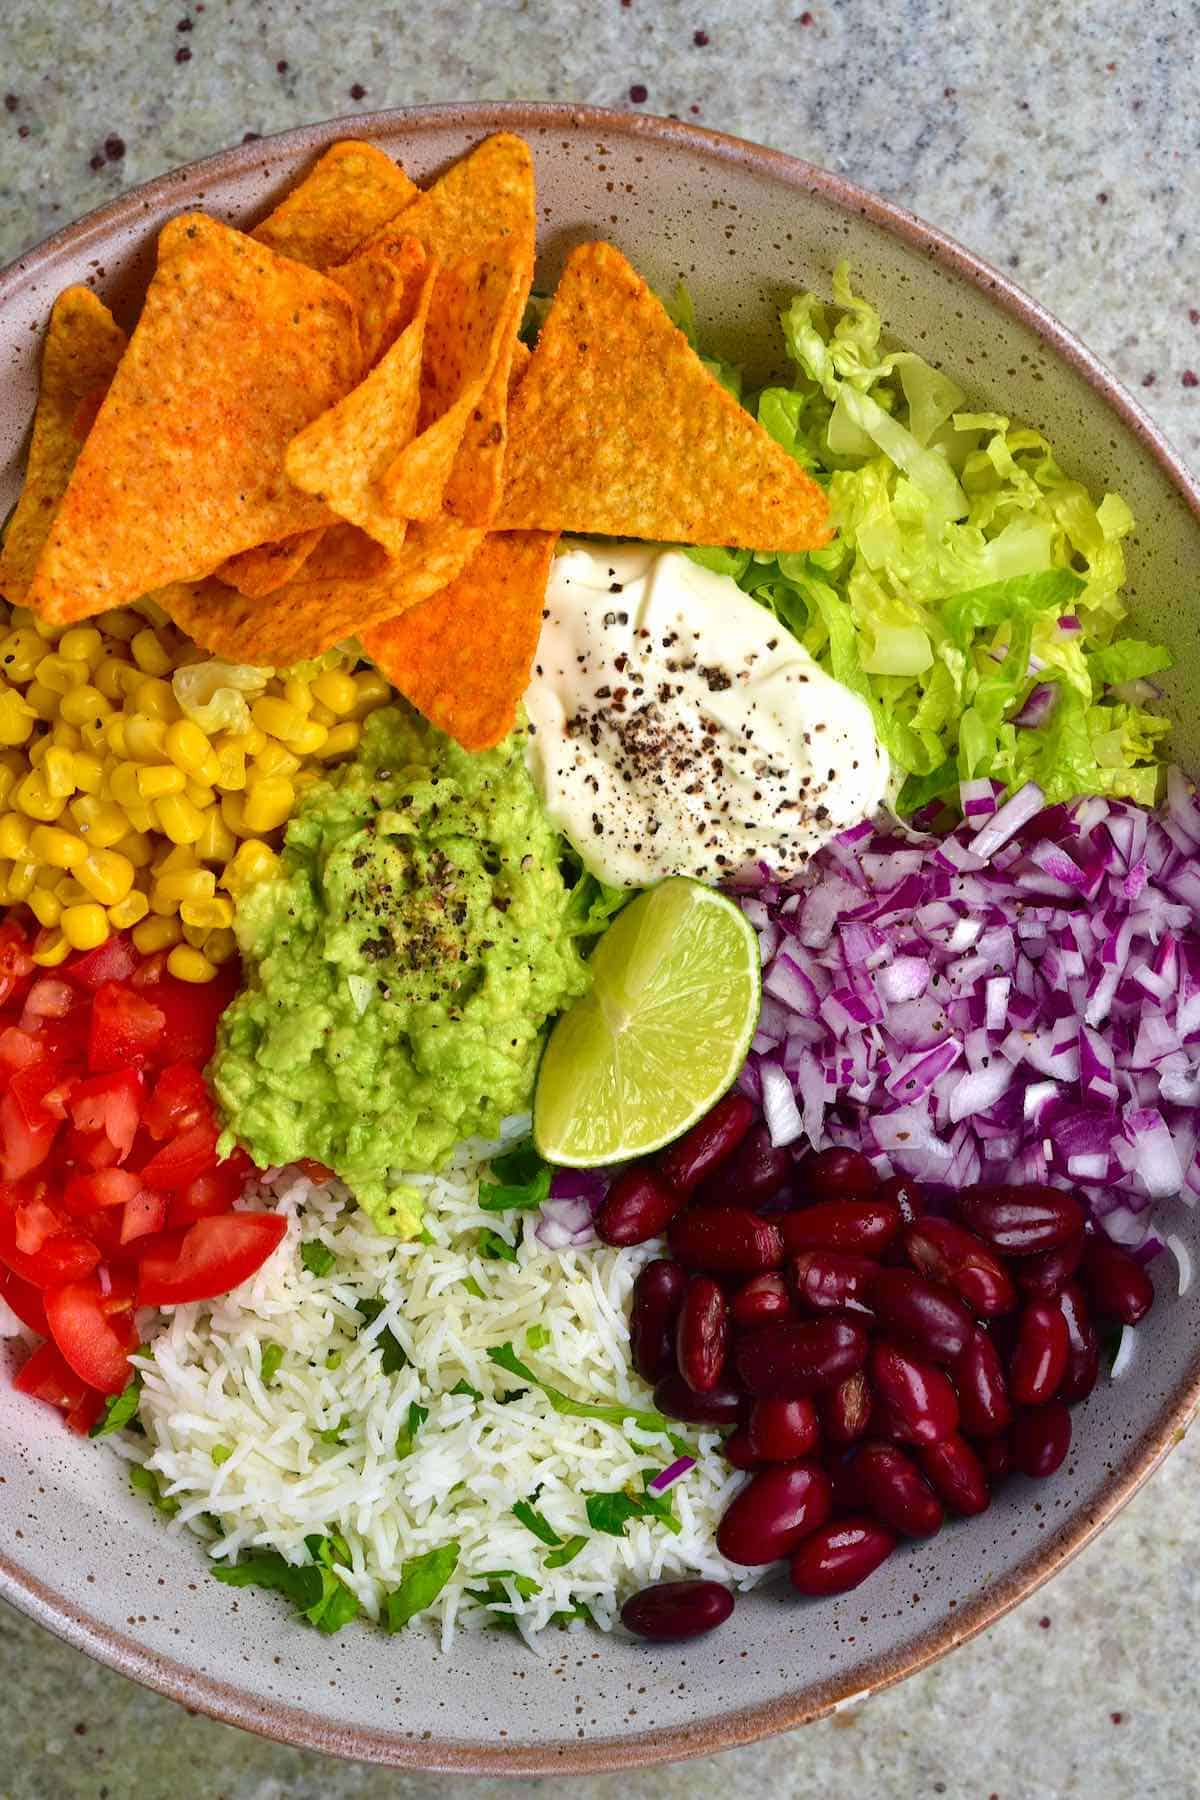 A bowl filled with rice, lettuce, corn, other veggies and corn chips